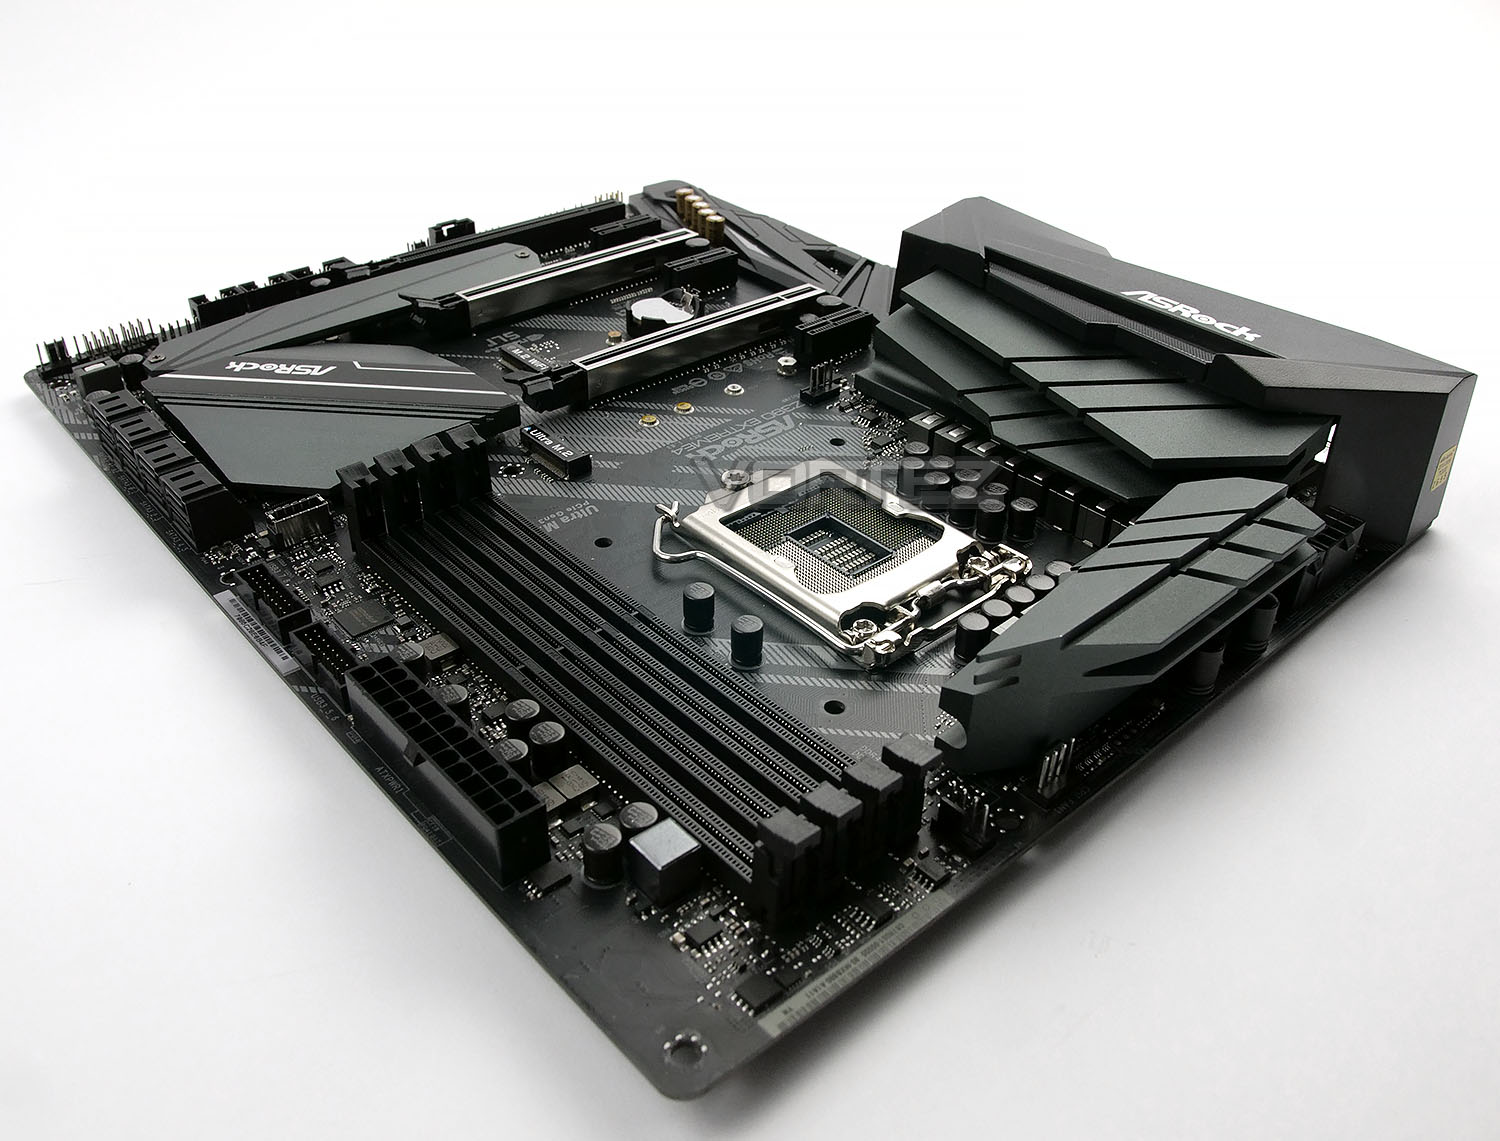 asrock_z390_extreme4_review_intro.jpg